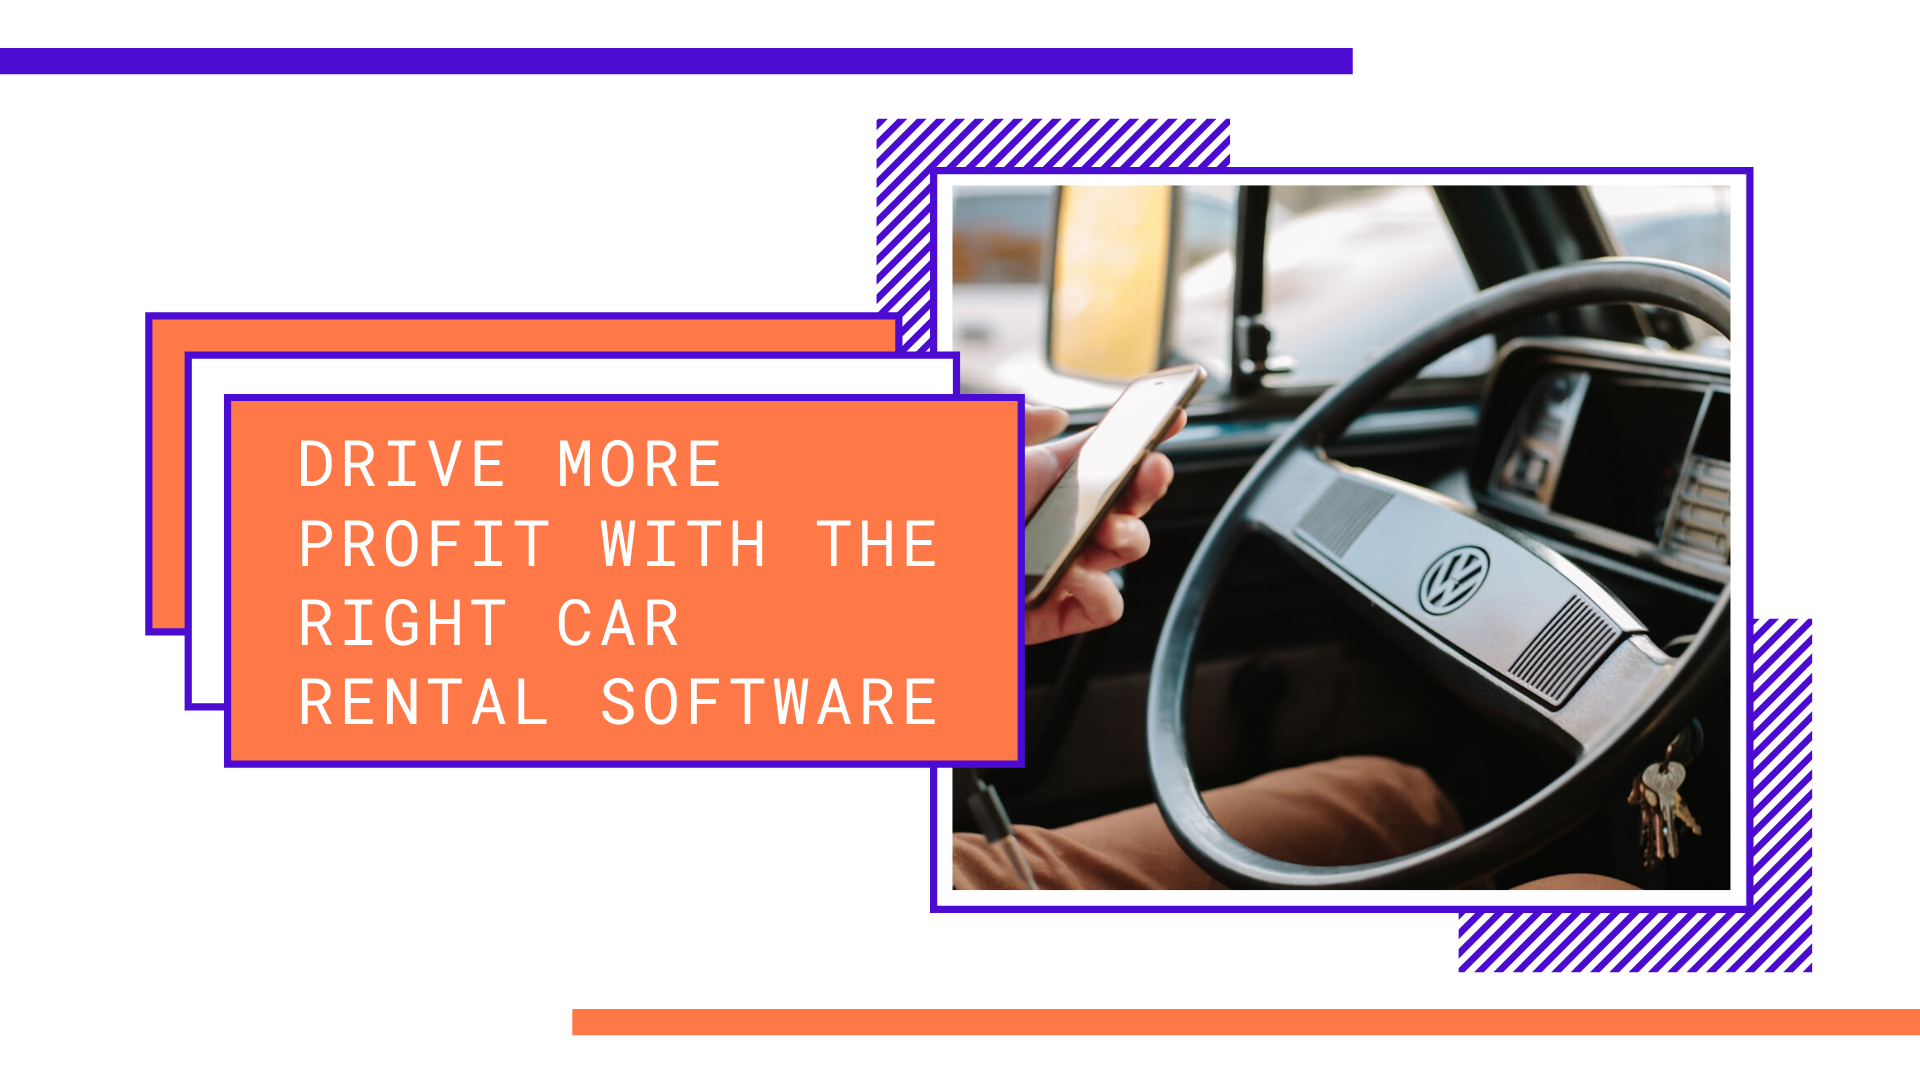 Drive More Profit With The Right Car Rental Software